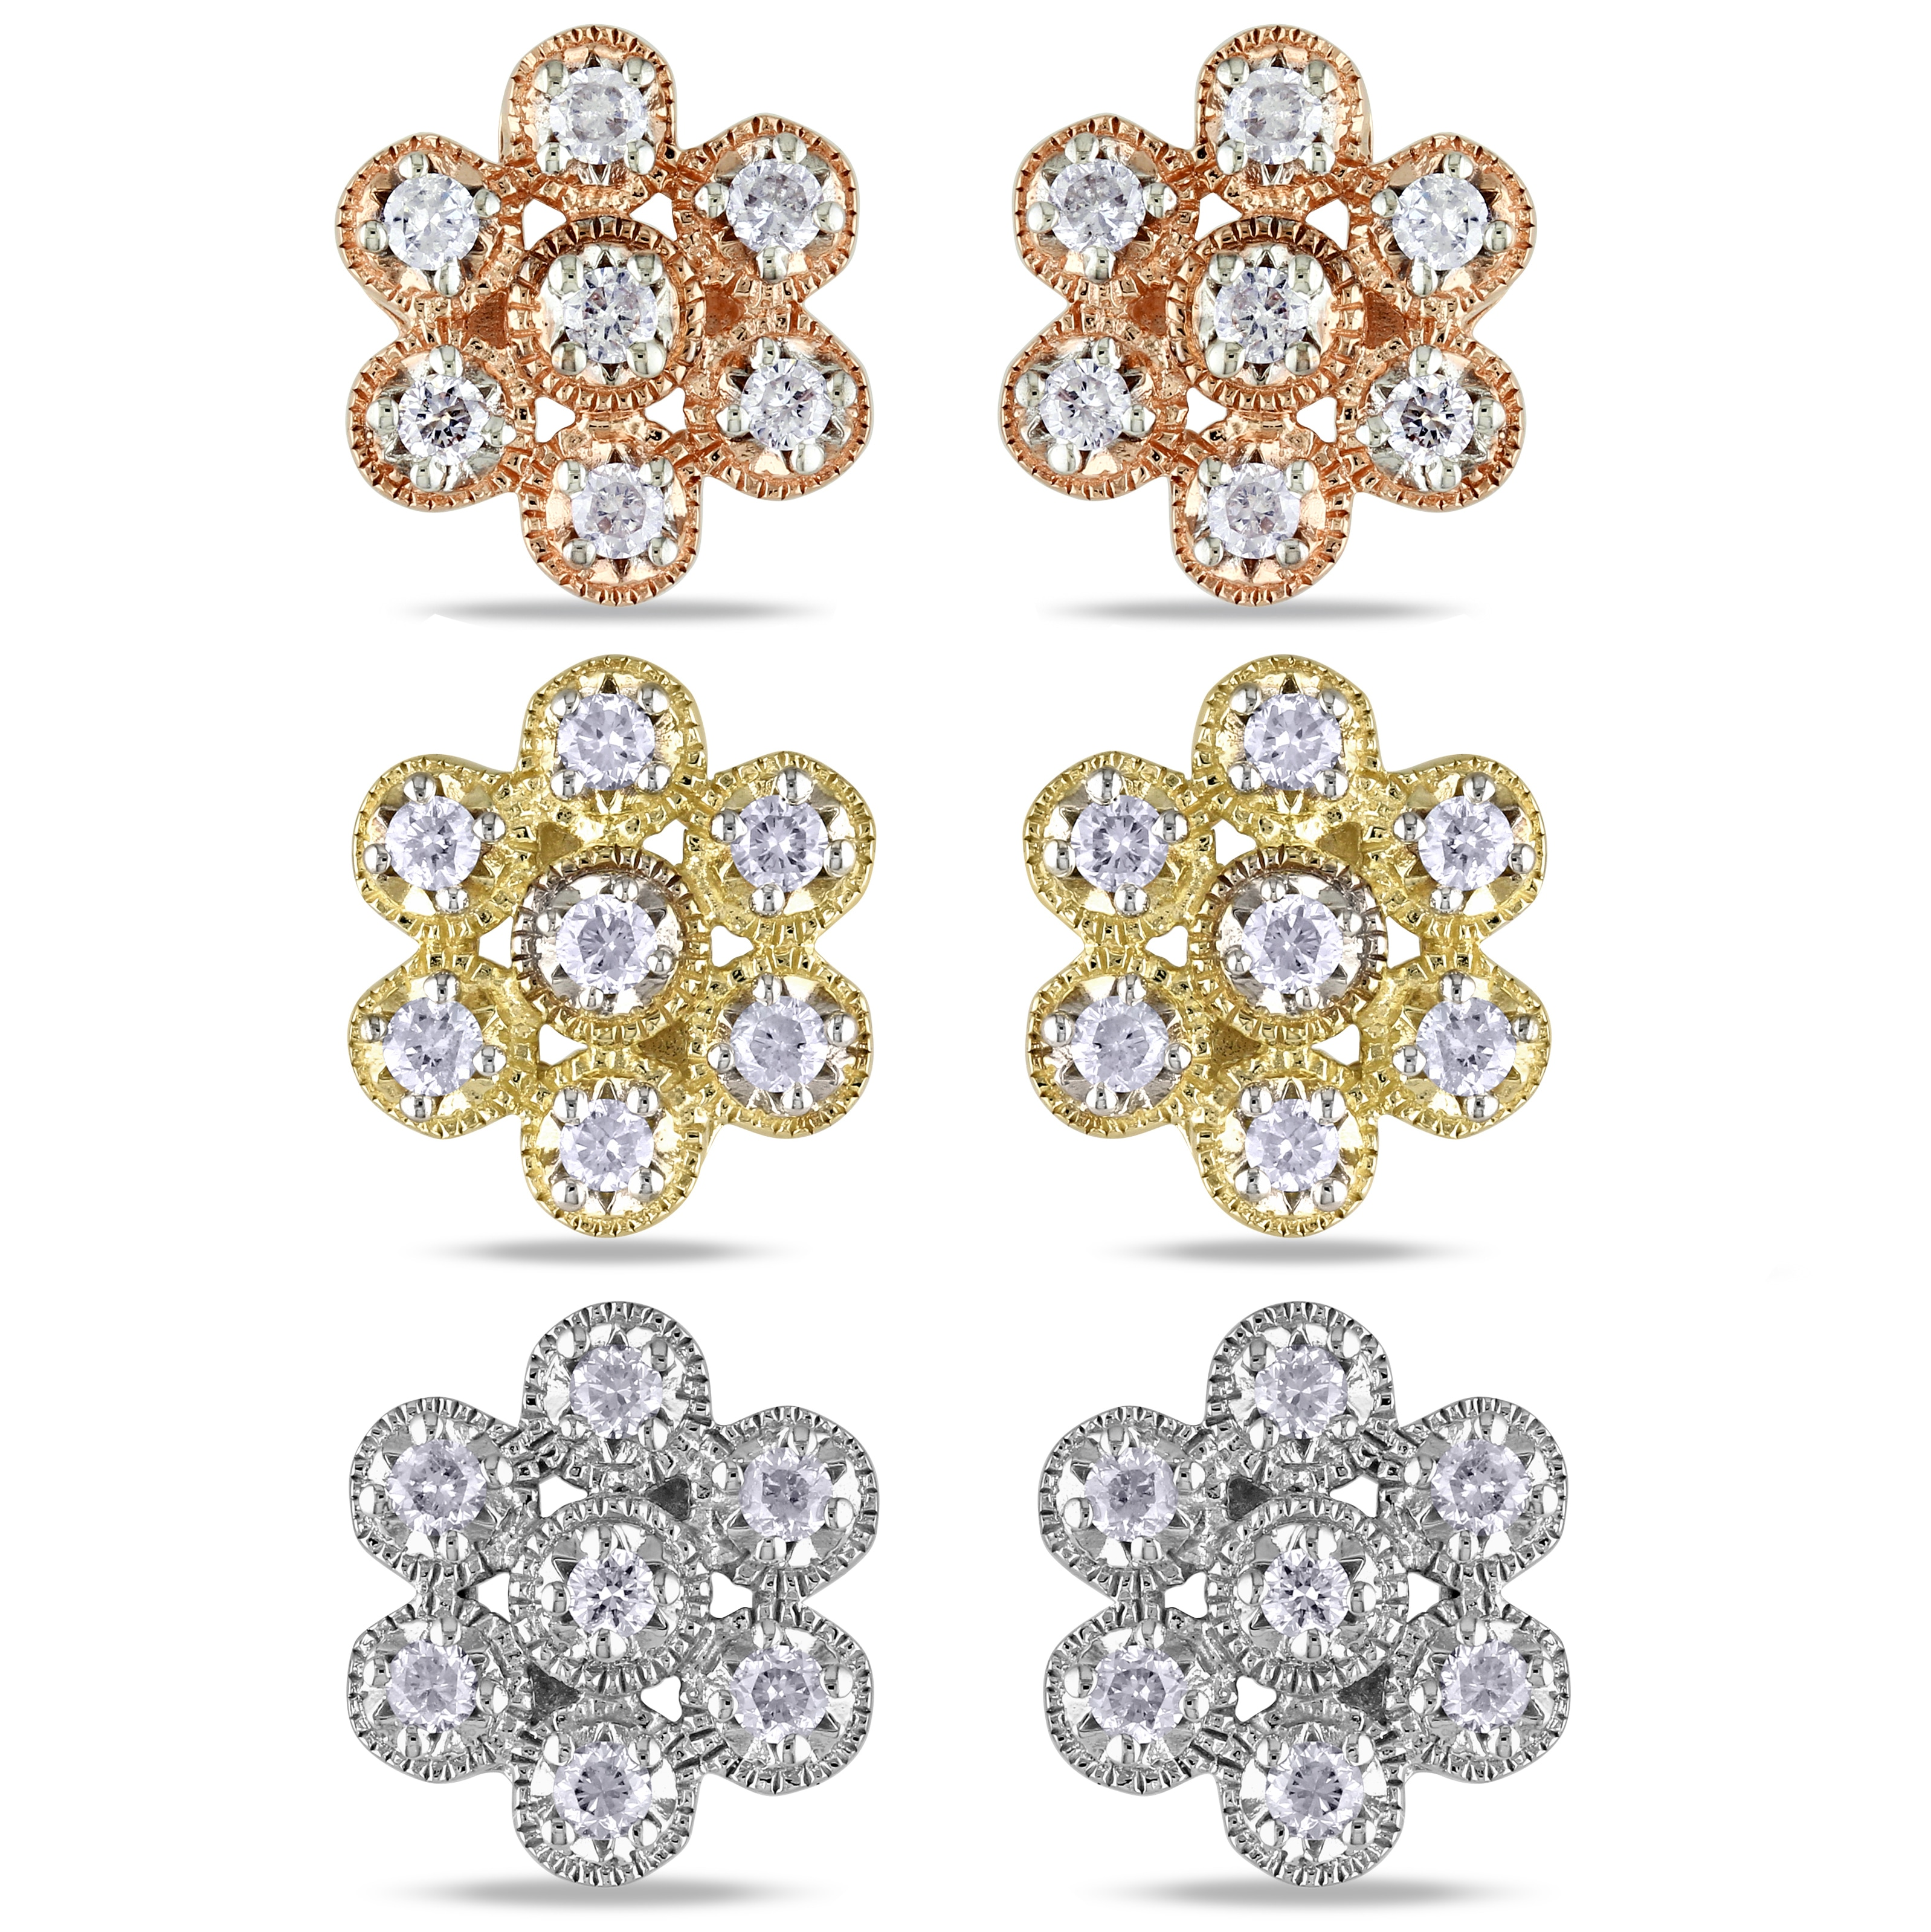 Miadora 10k Gold 1/4ct TDW Diamond Flower Earrings (G-H, I1-I2)